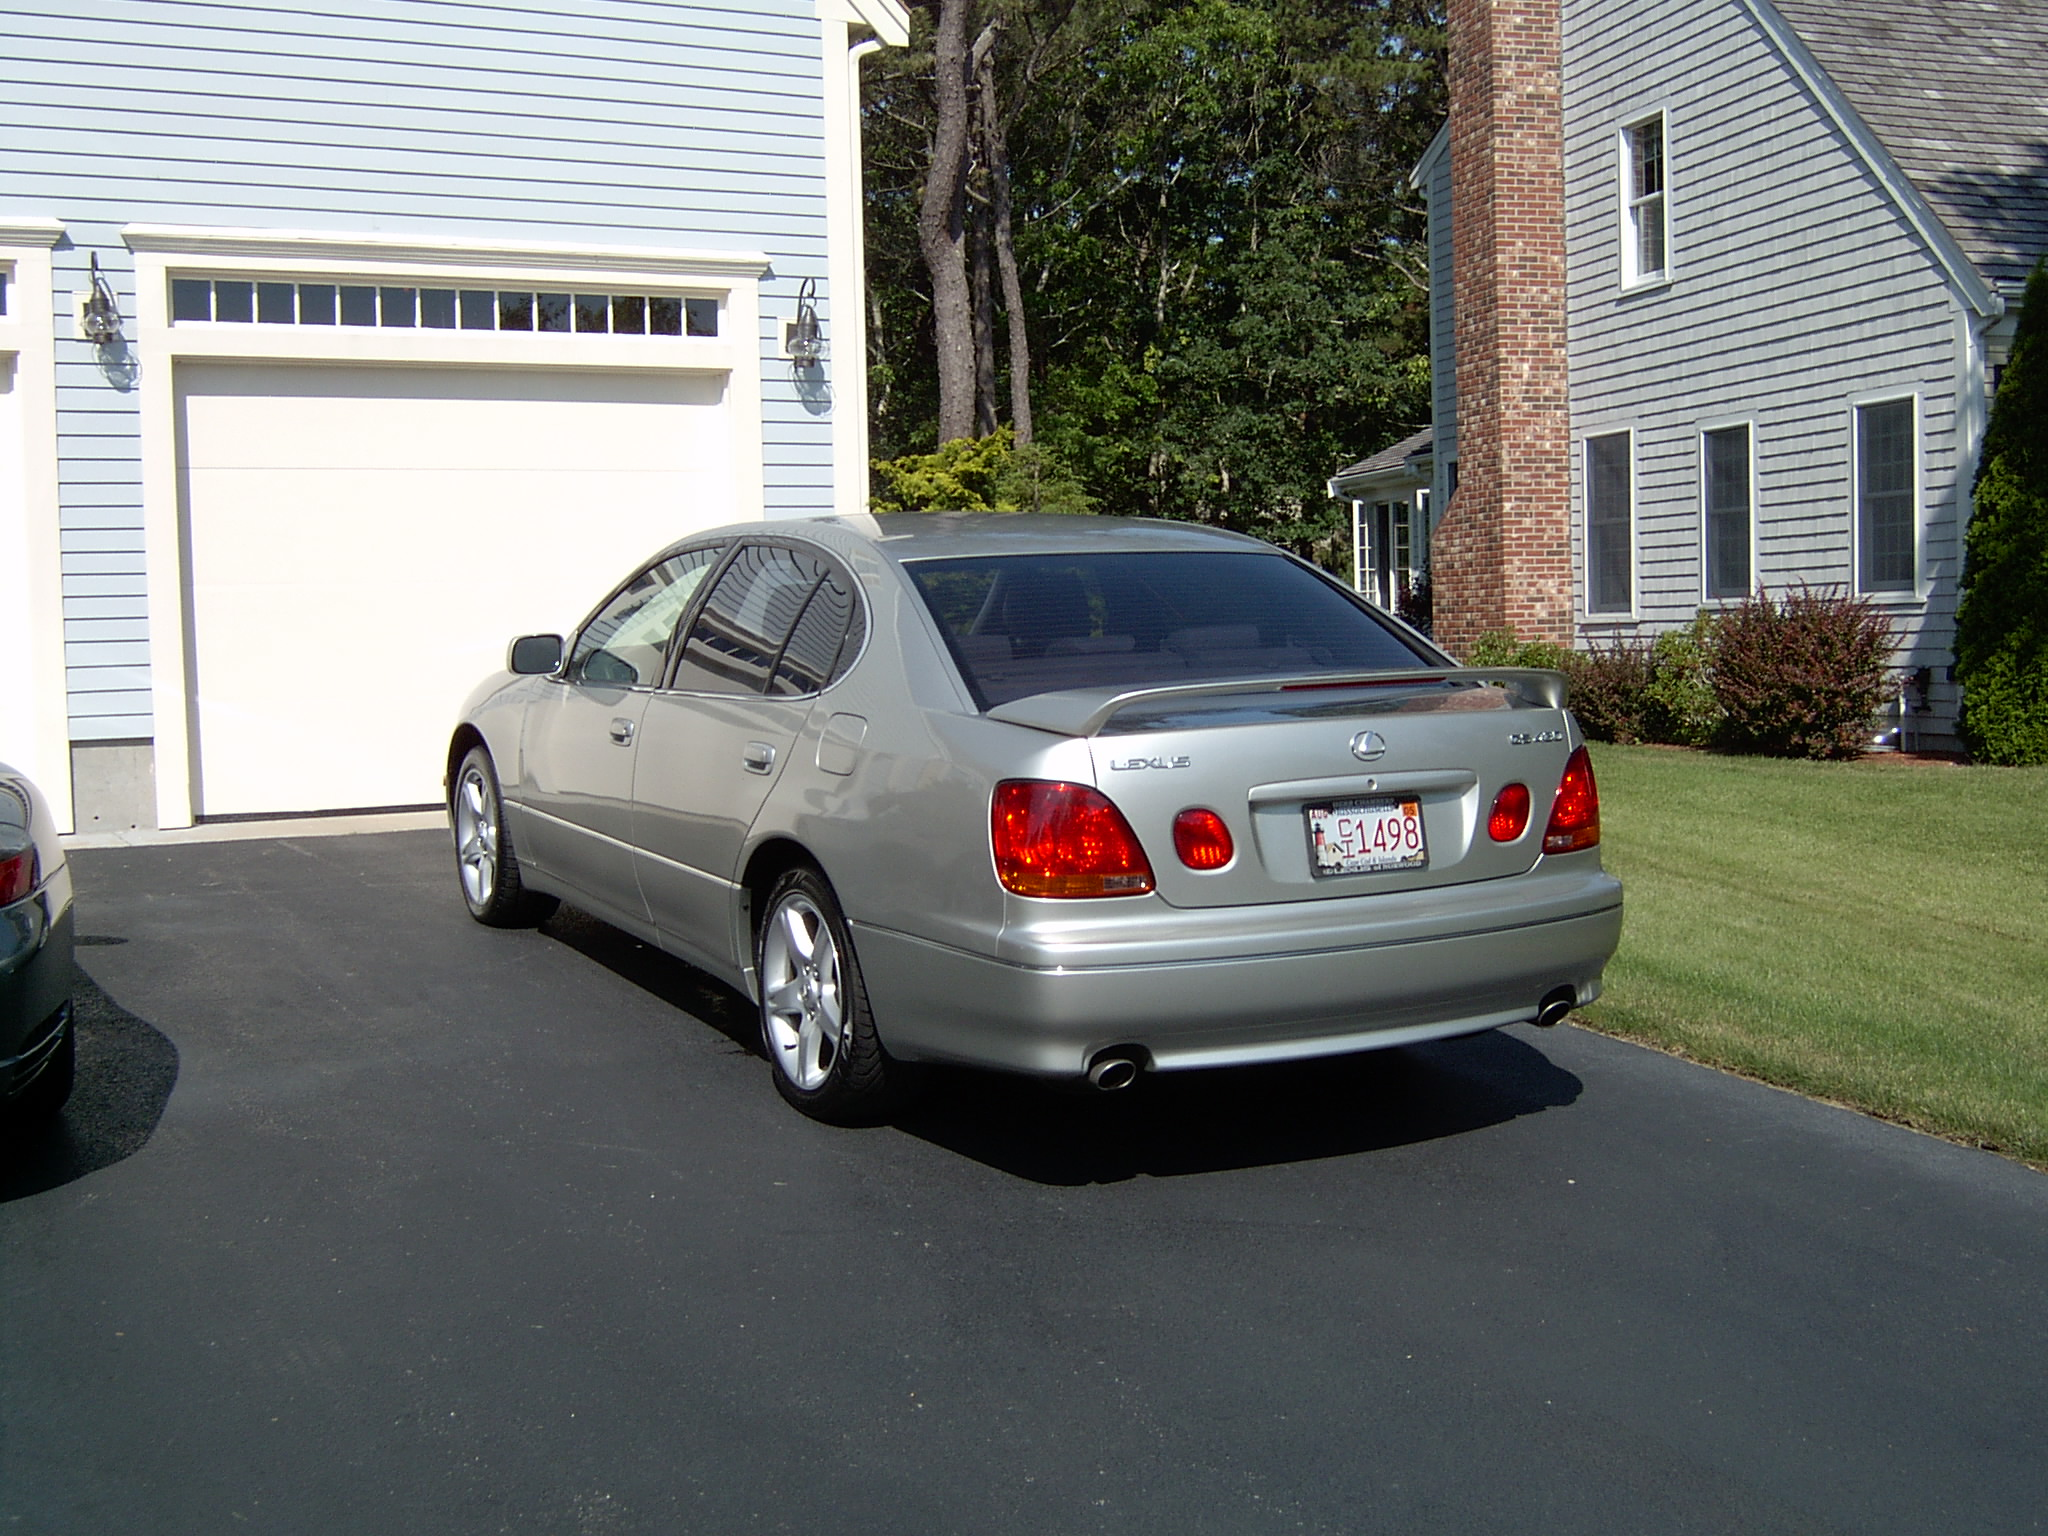 2002 lexus gs 430 information and photos zombiedrive. Black Bedroom Furniture Sets. Home Design Ideas